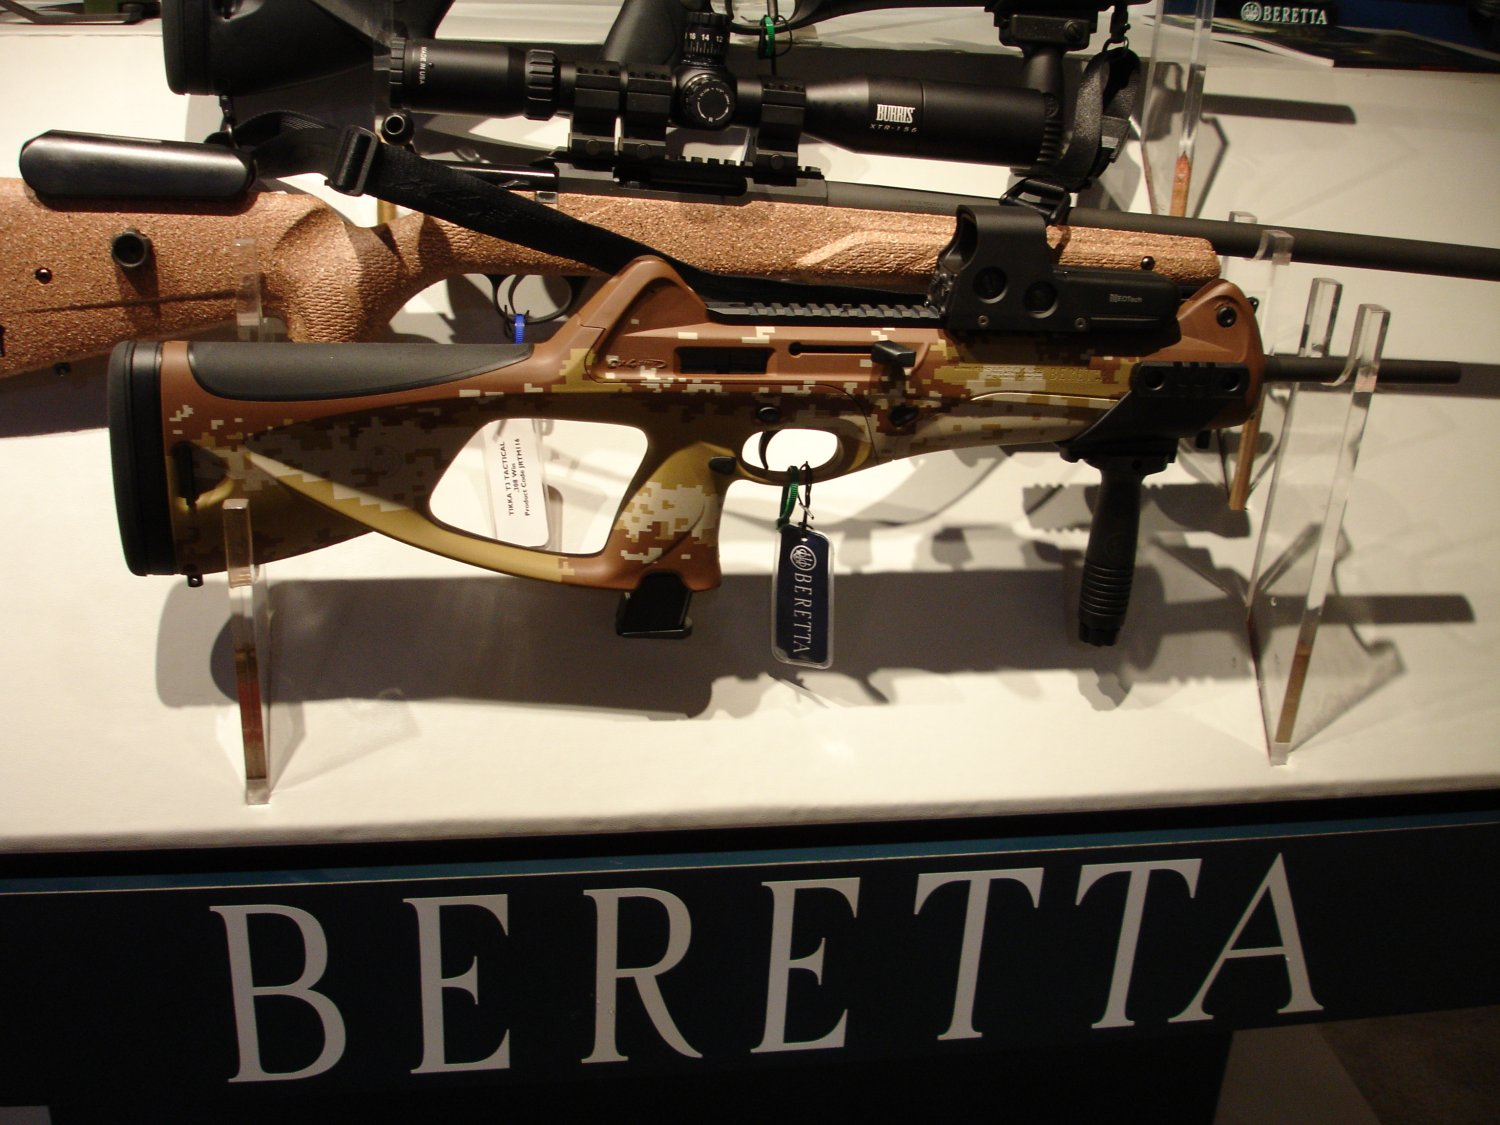 hight resolution of beretta cx4 storm semiautomatic carbine in digital desert camouflage